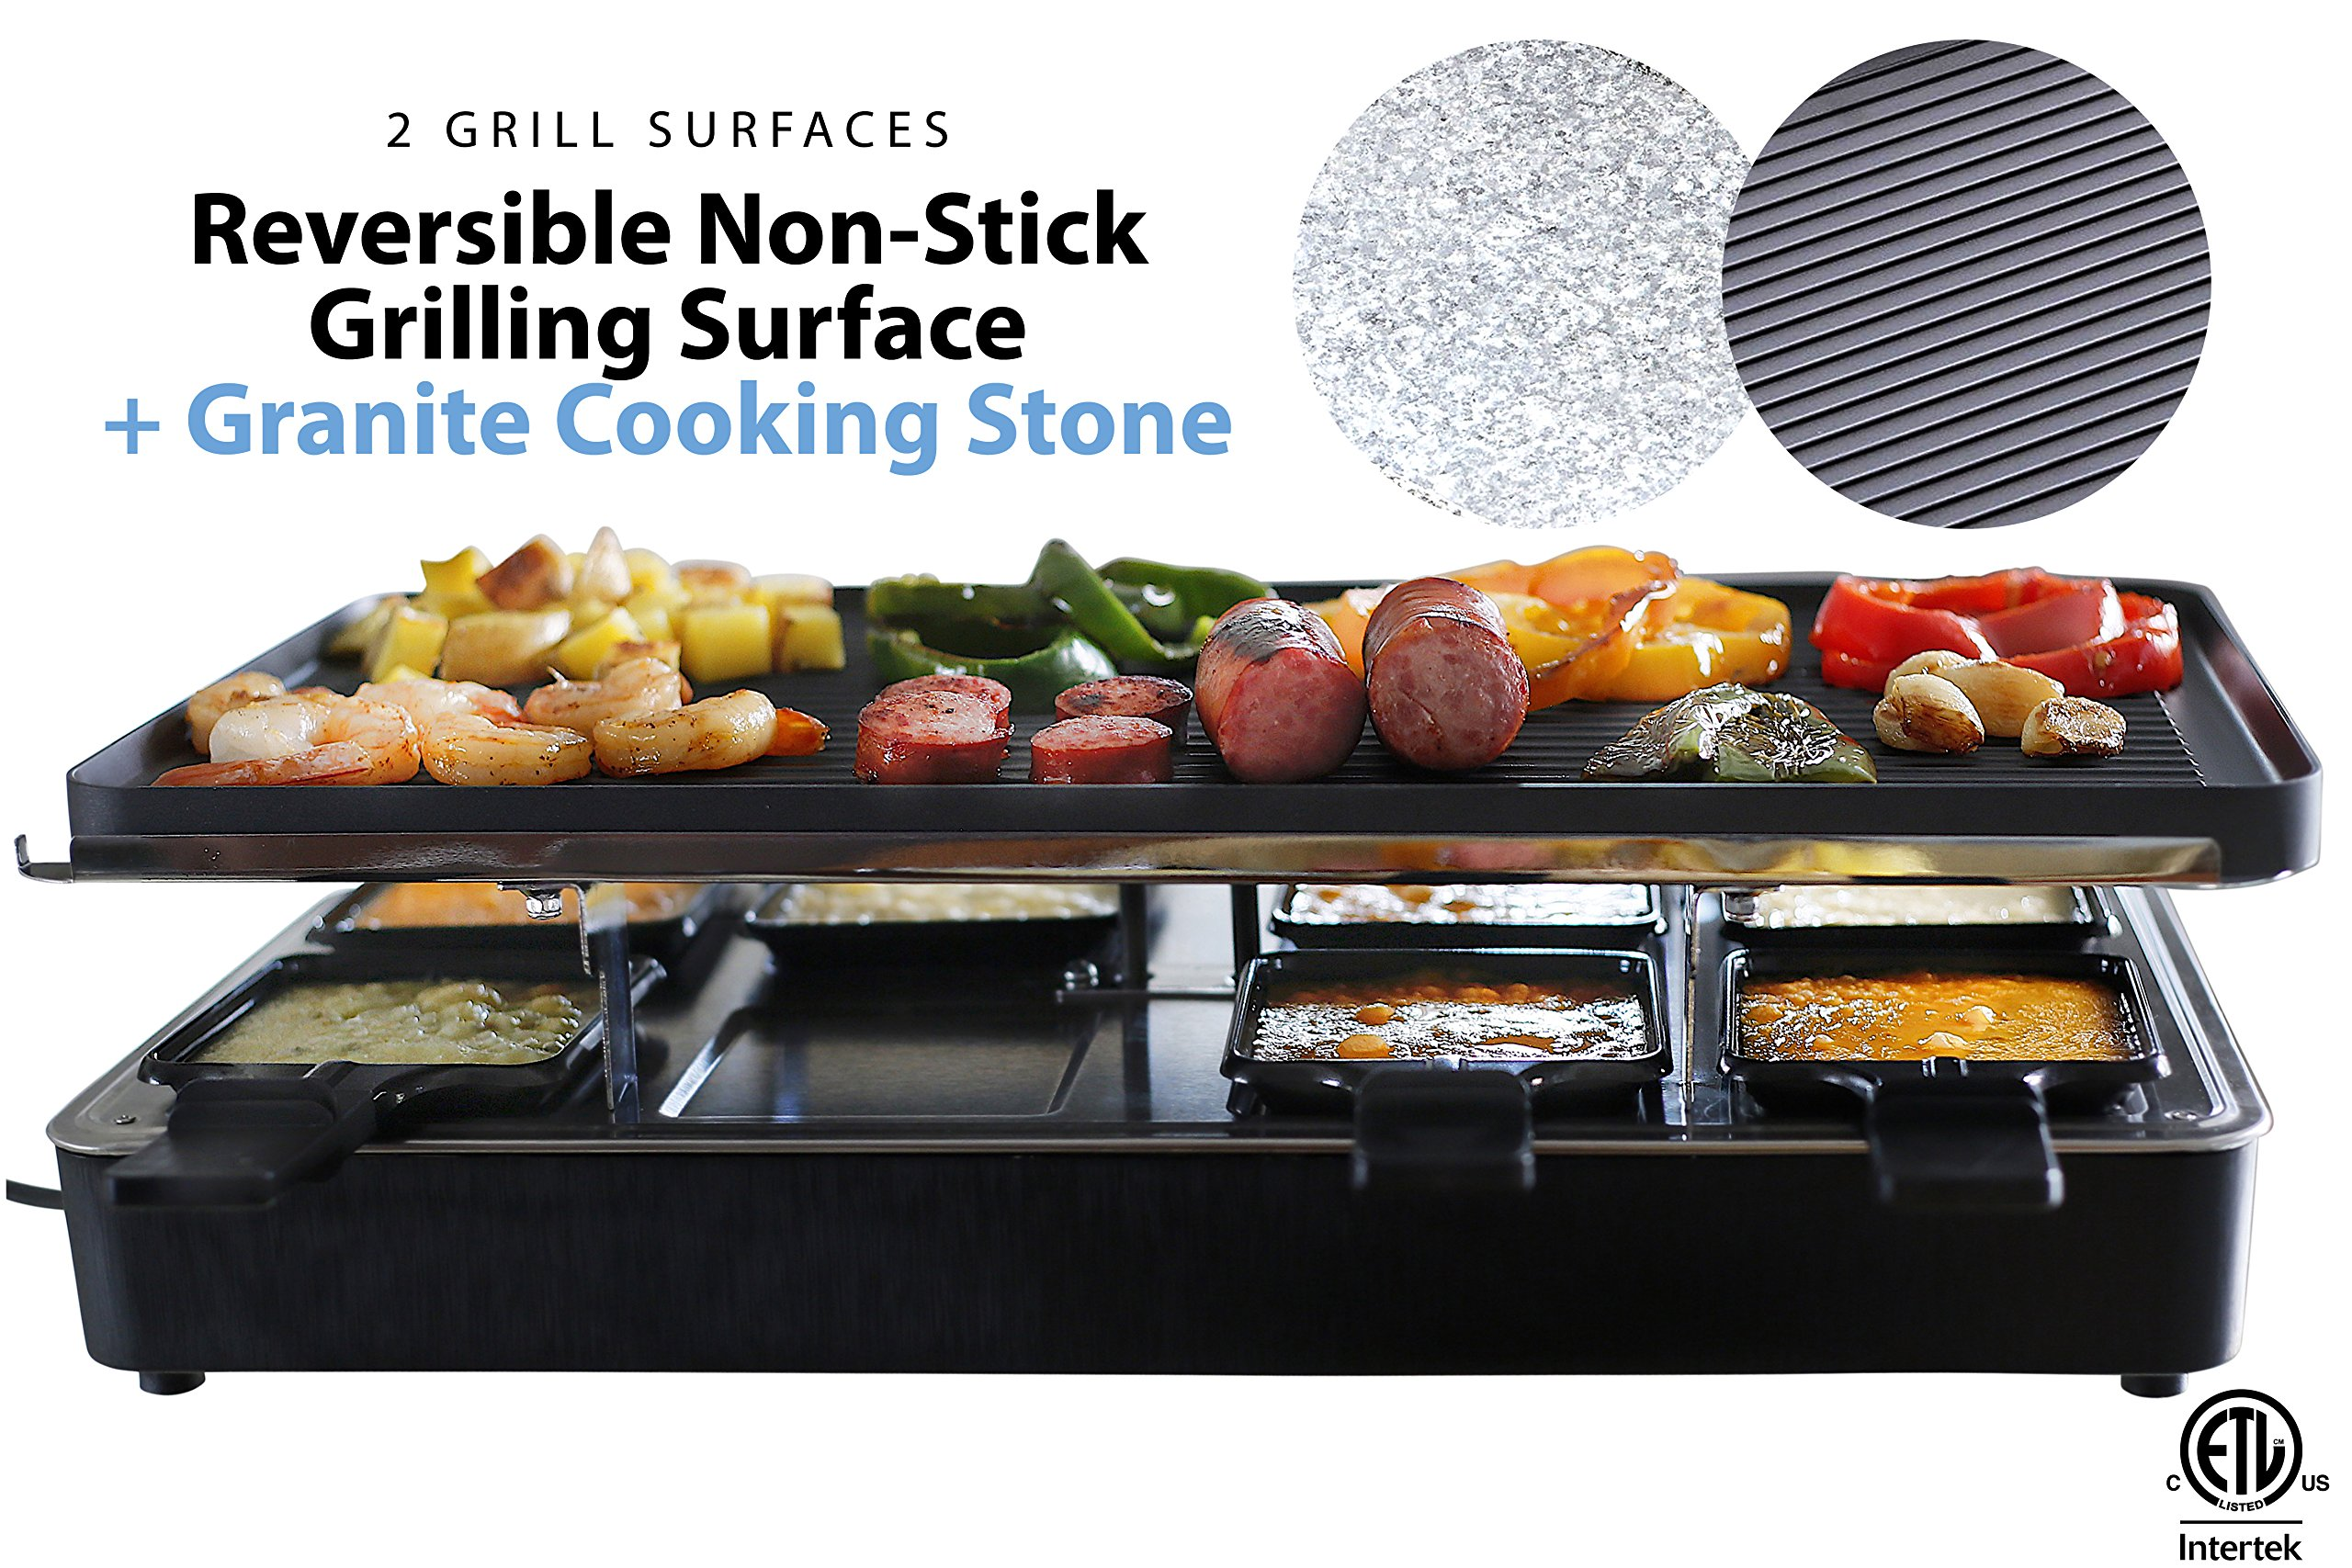 Milliard Raclette Grill for Eight People, Includes Granite Cooking Stone,  Reversible Non-Stick